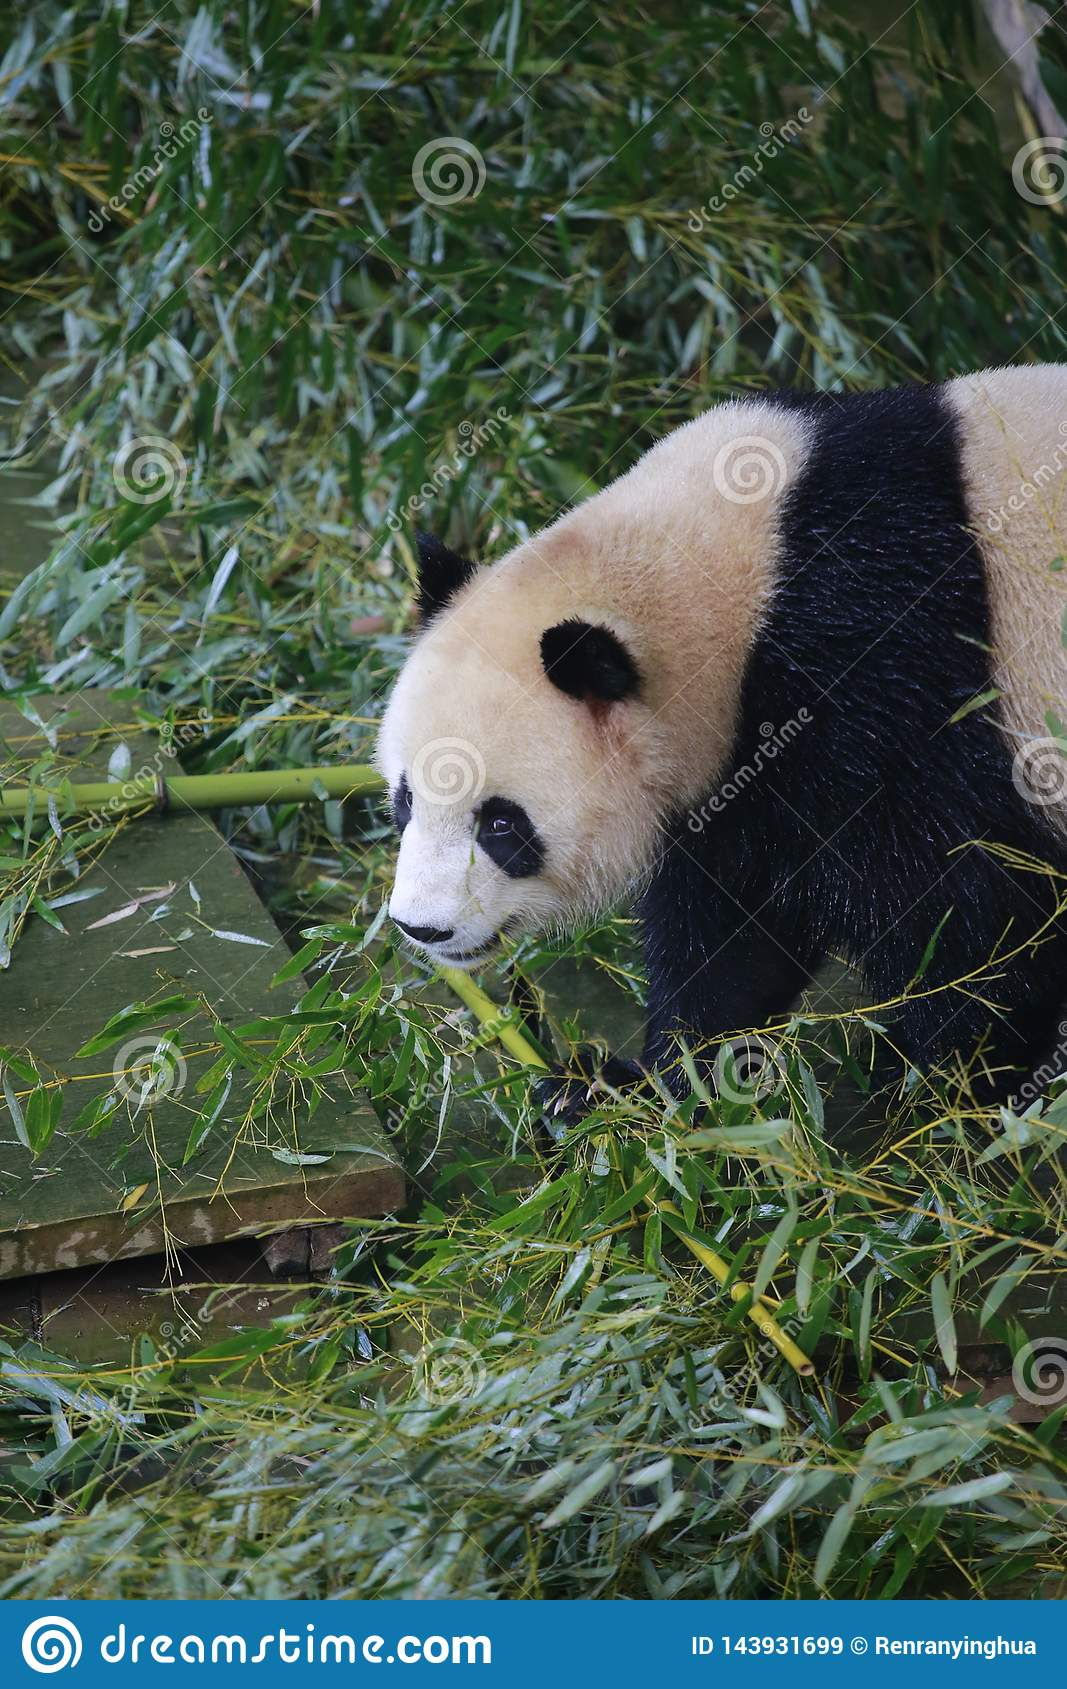 The giant panda belongs to the only mammals of the carnivora, the bear family, the giant panda subfamily and the giant panda. The